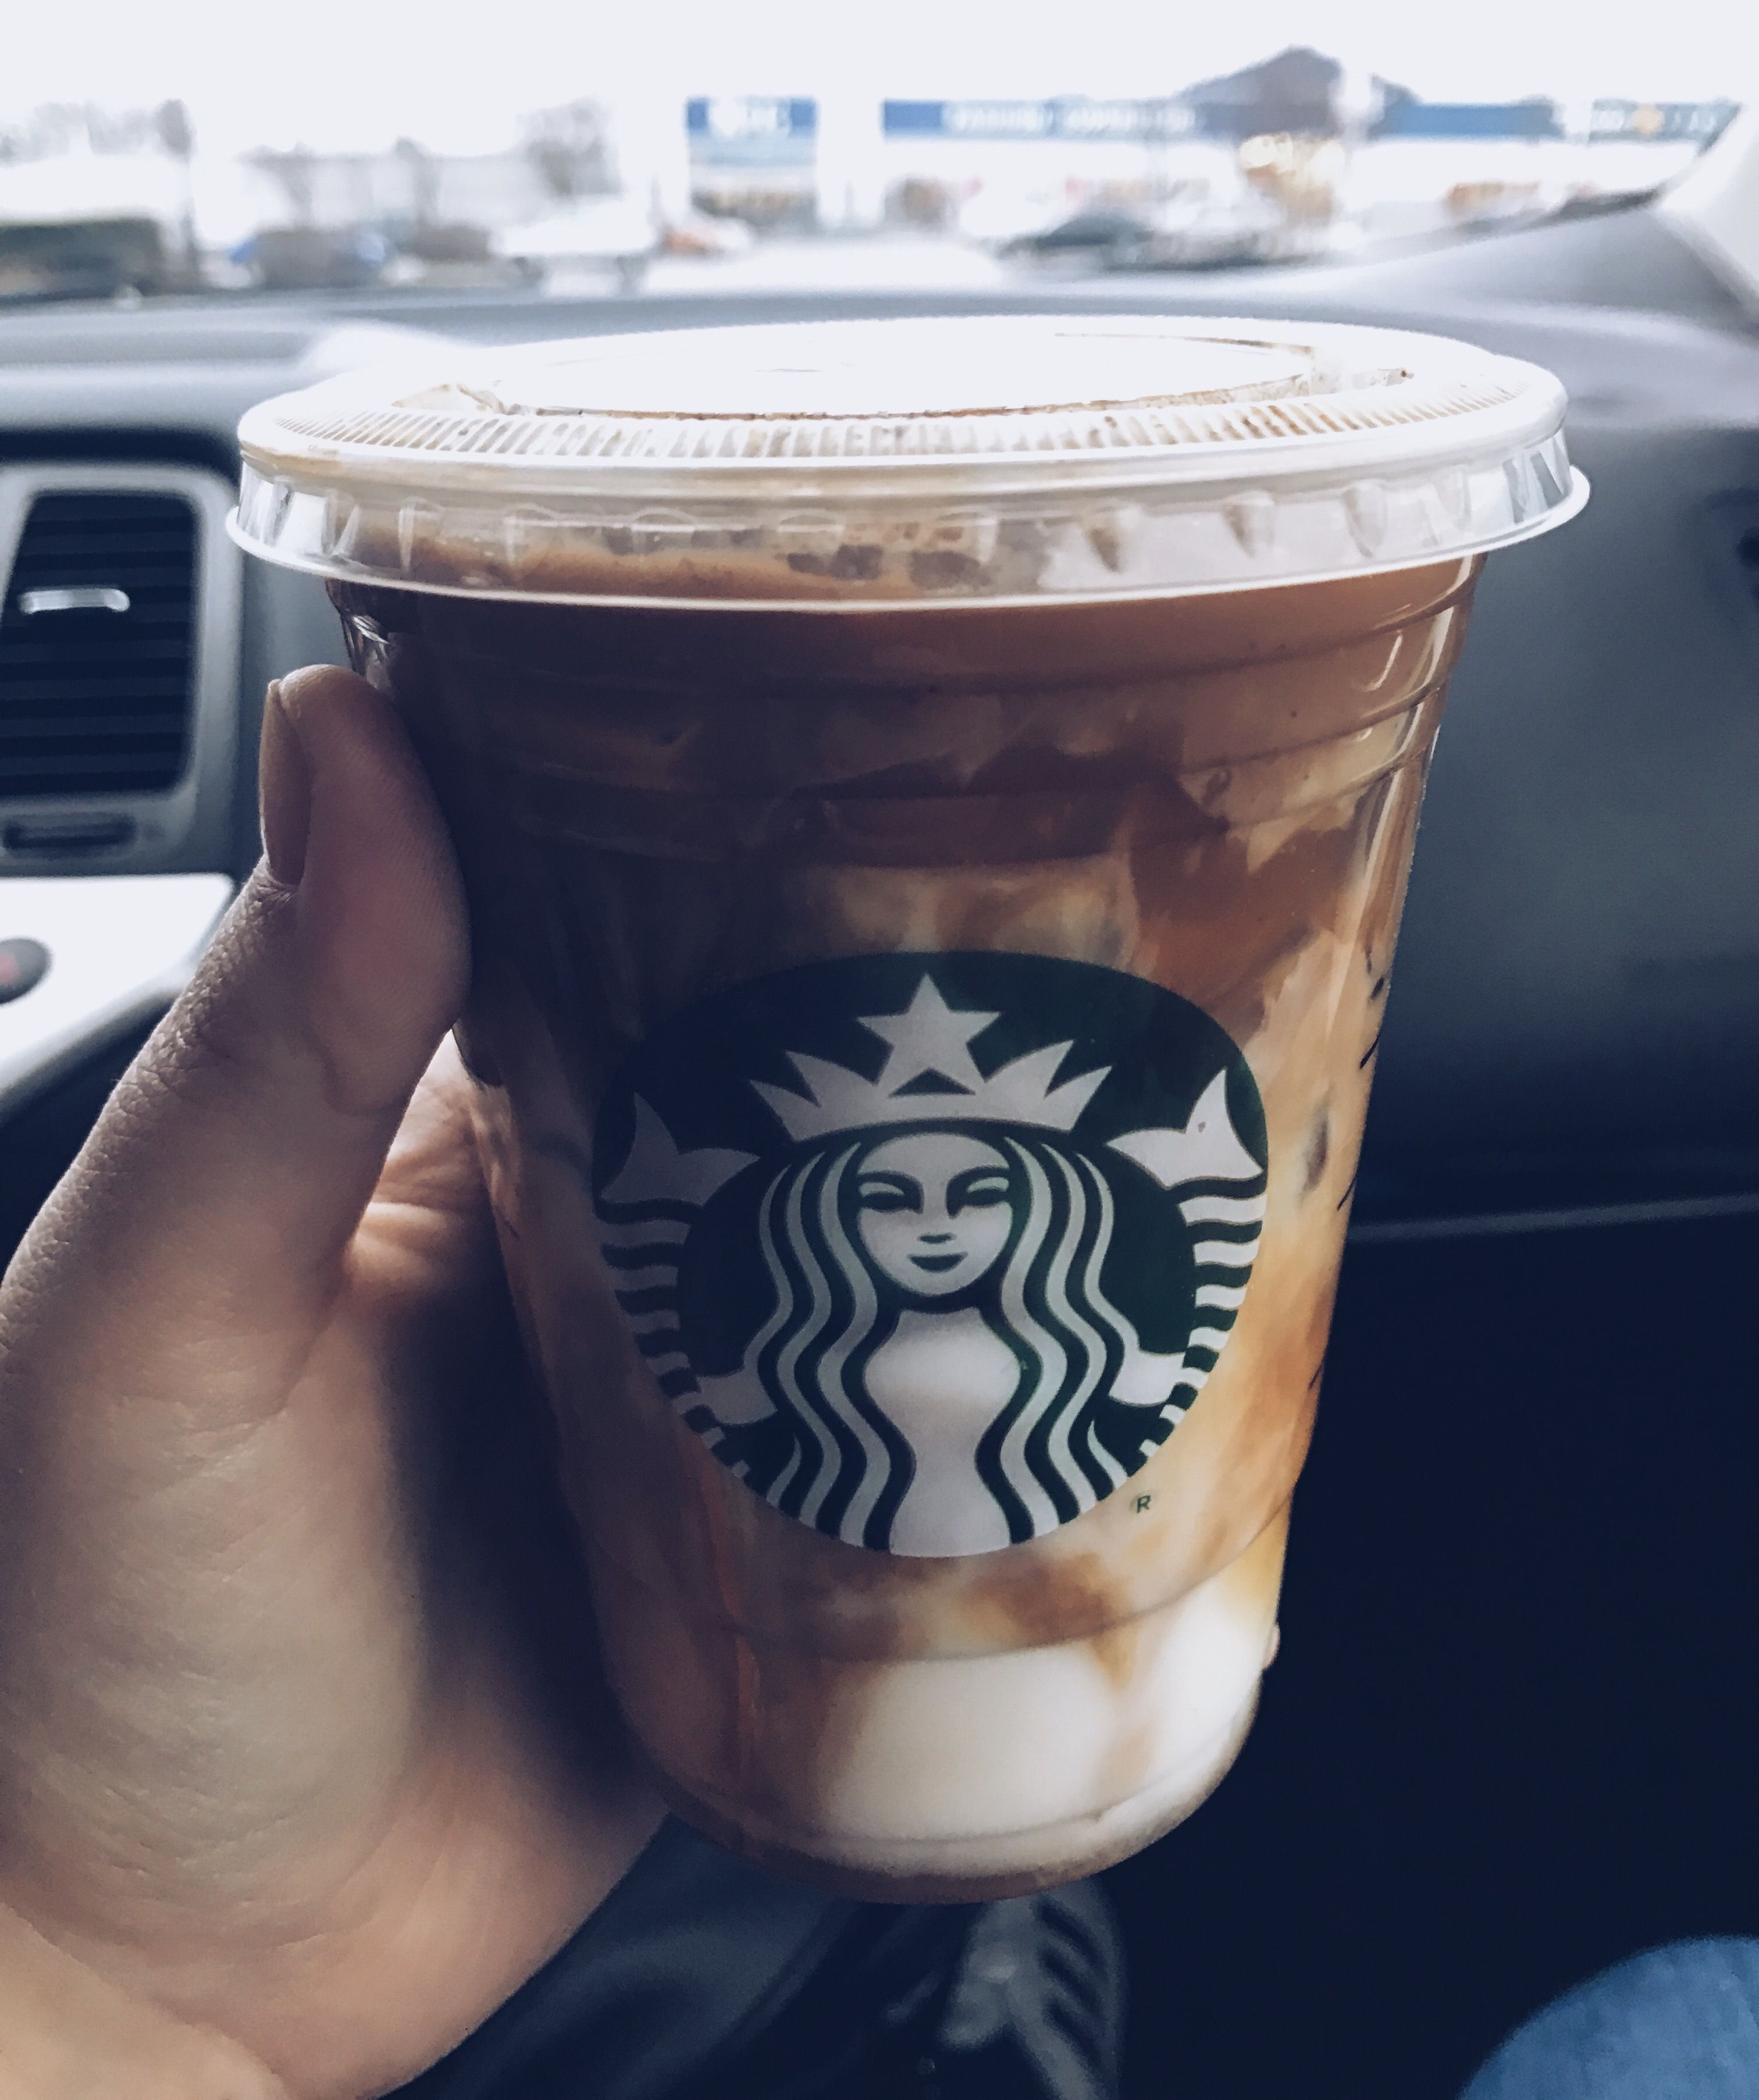 Pin by Kessa🤩 on coffee ★ Starbucks drinks, Coffee cafe